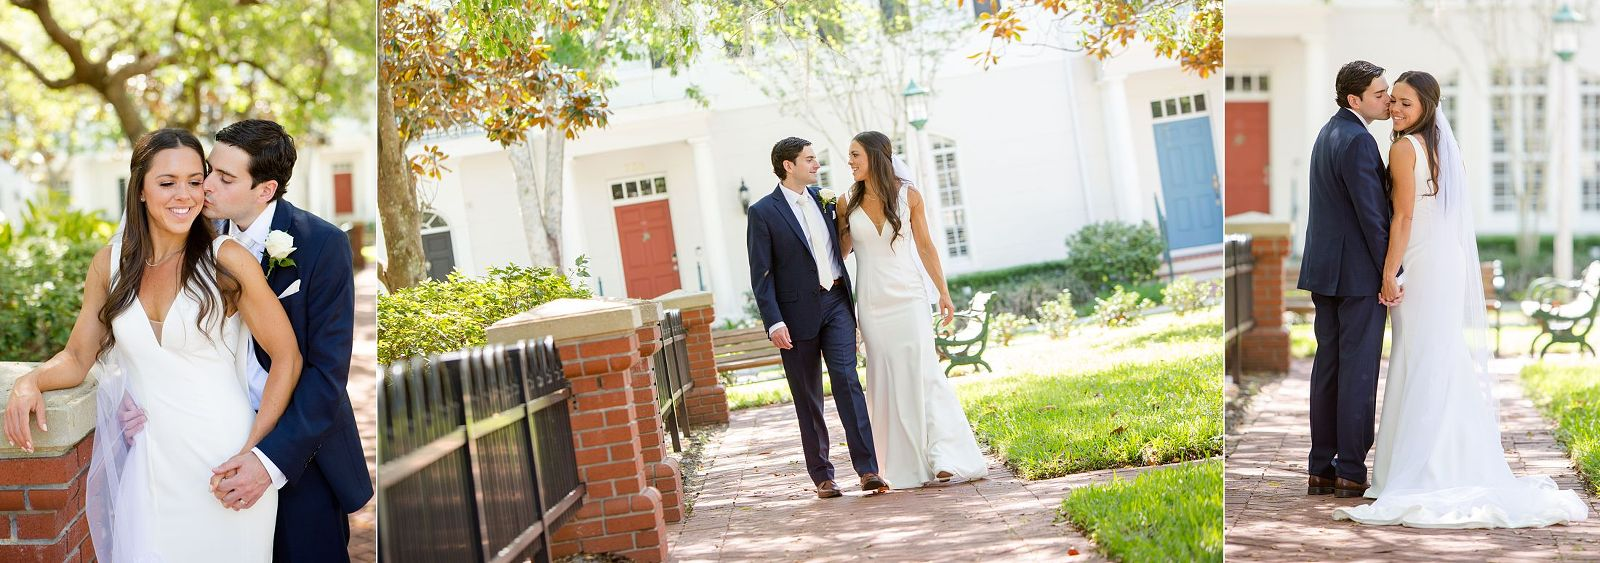 Orlando Wedding and Portrait Photographer